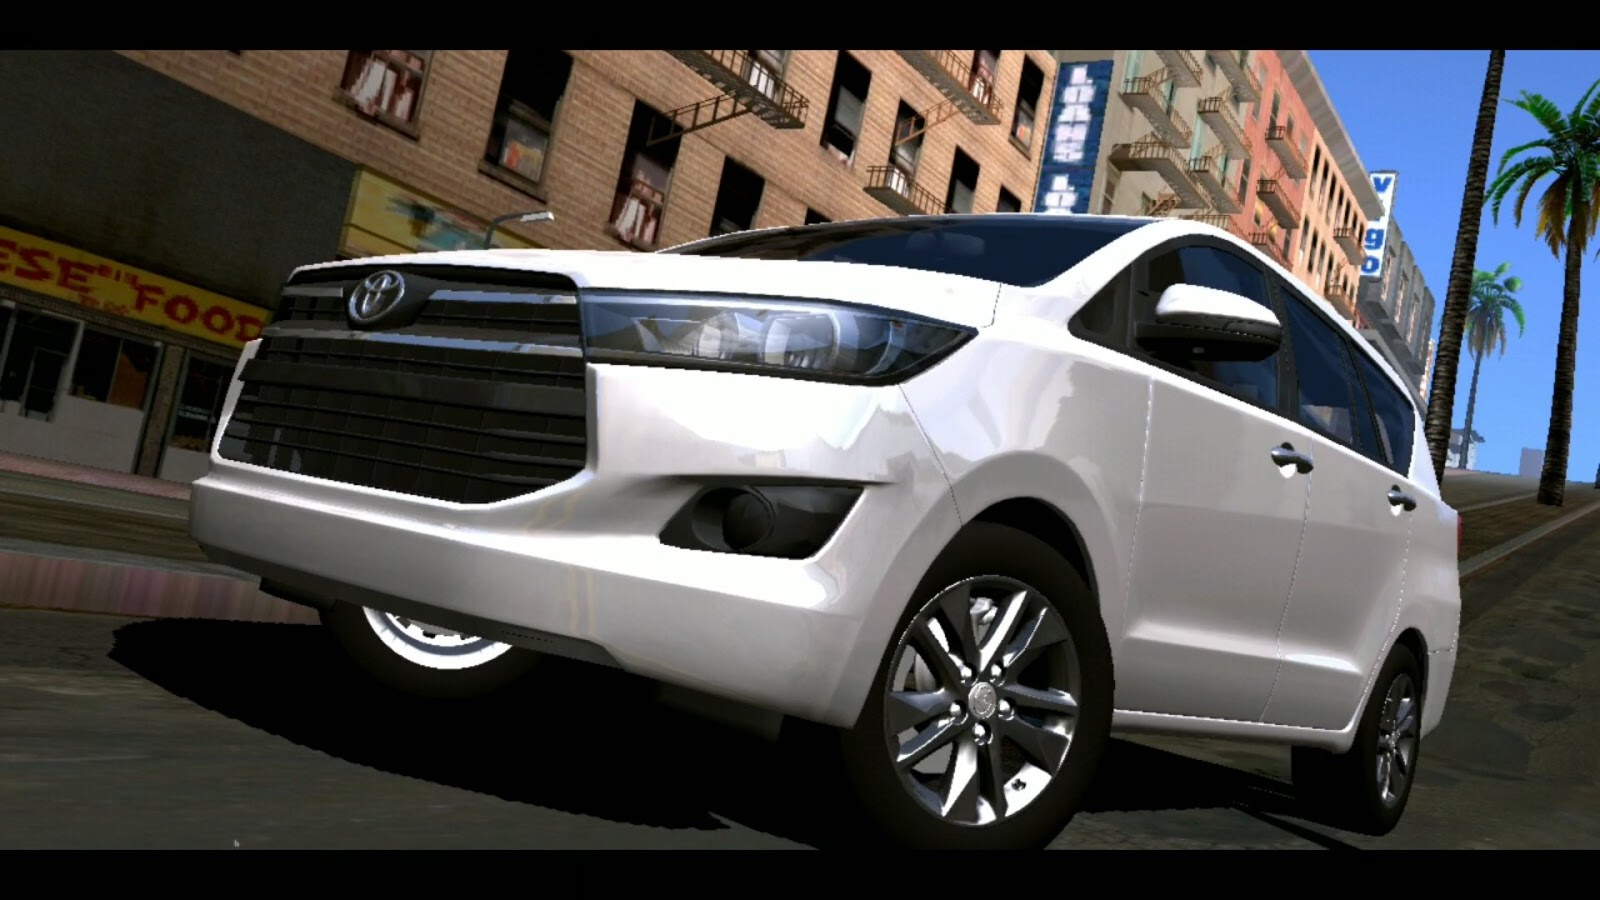 Toyota Innova Crysta Car Mod For Gta Sa Android Pc Grand Theft Auto Mods For Android Pc